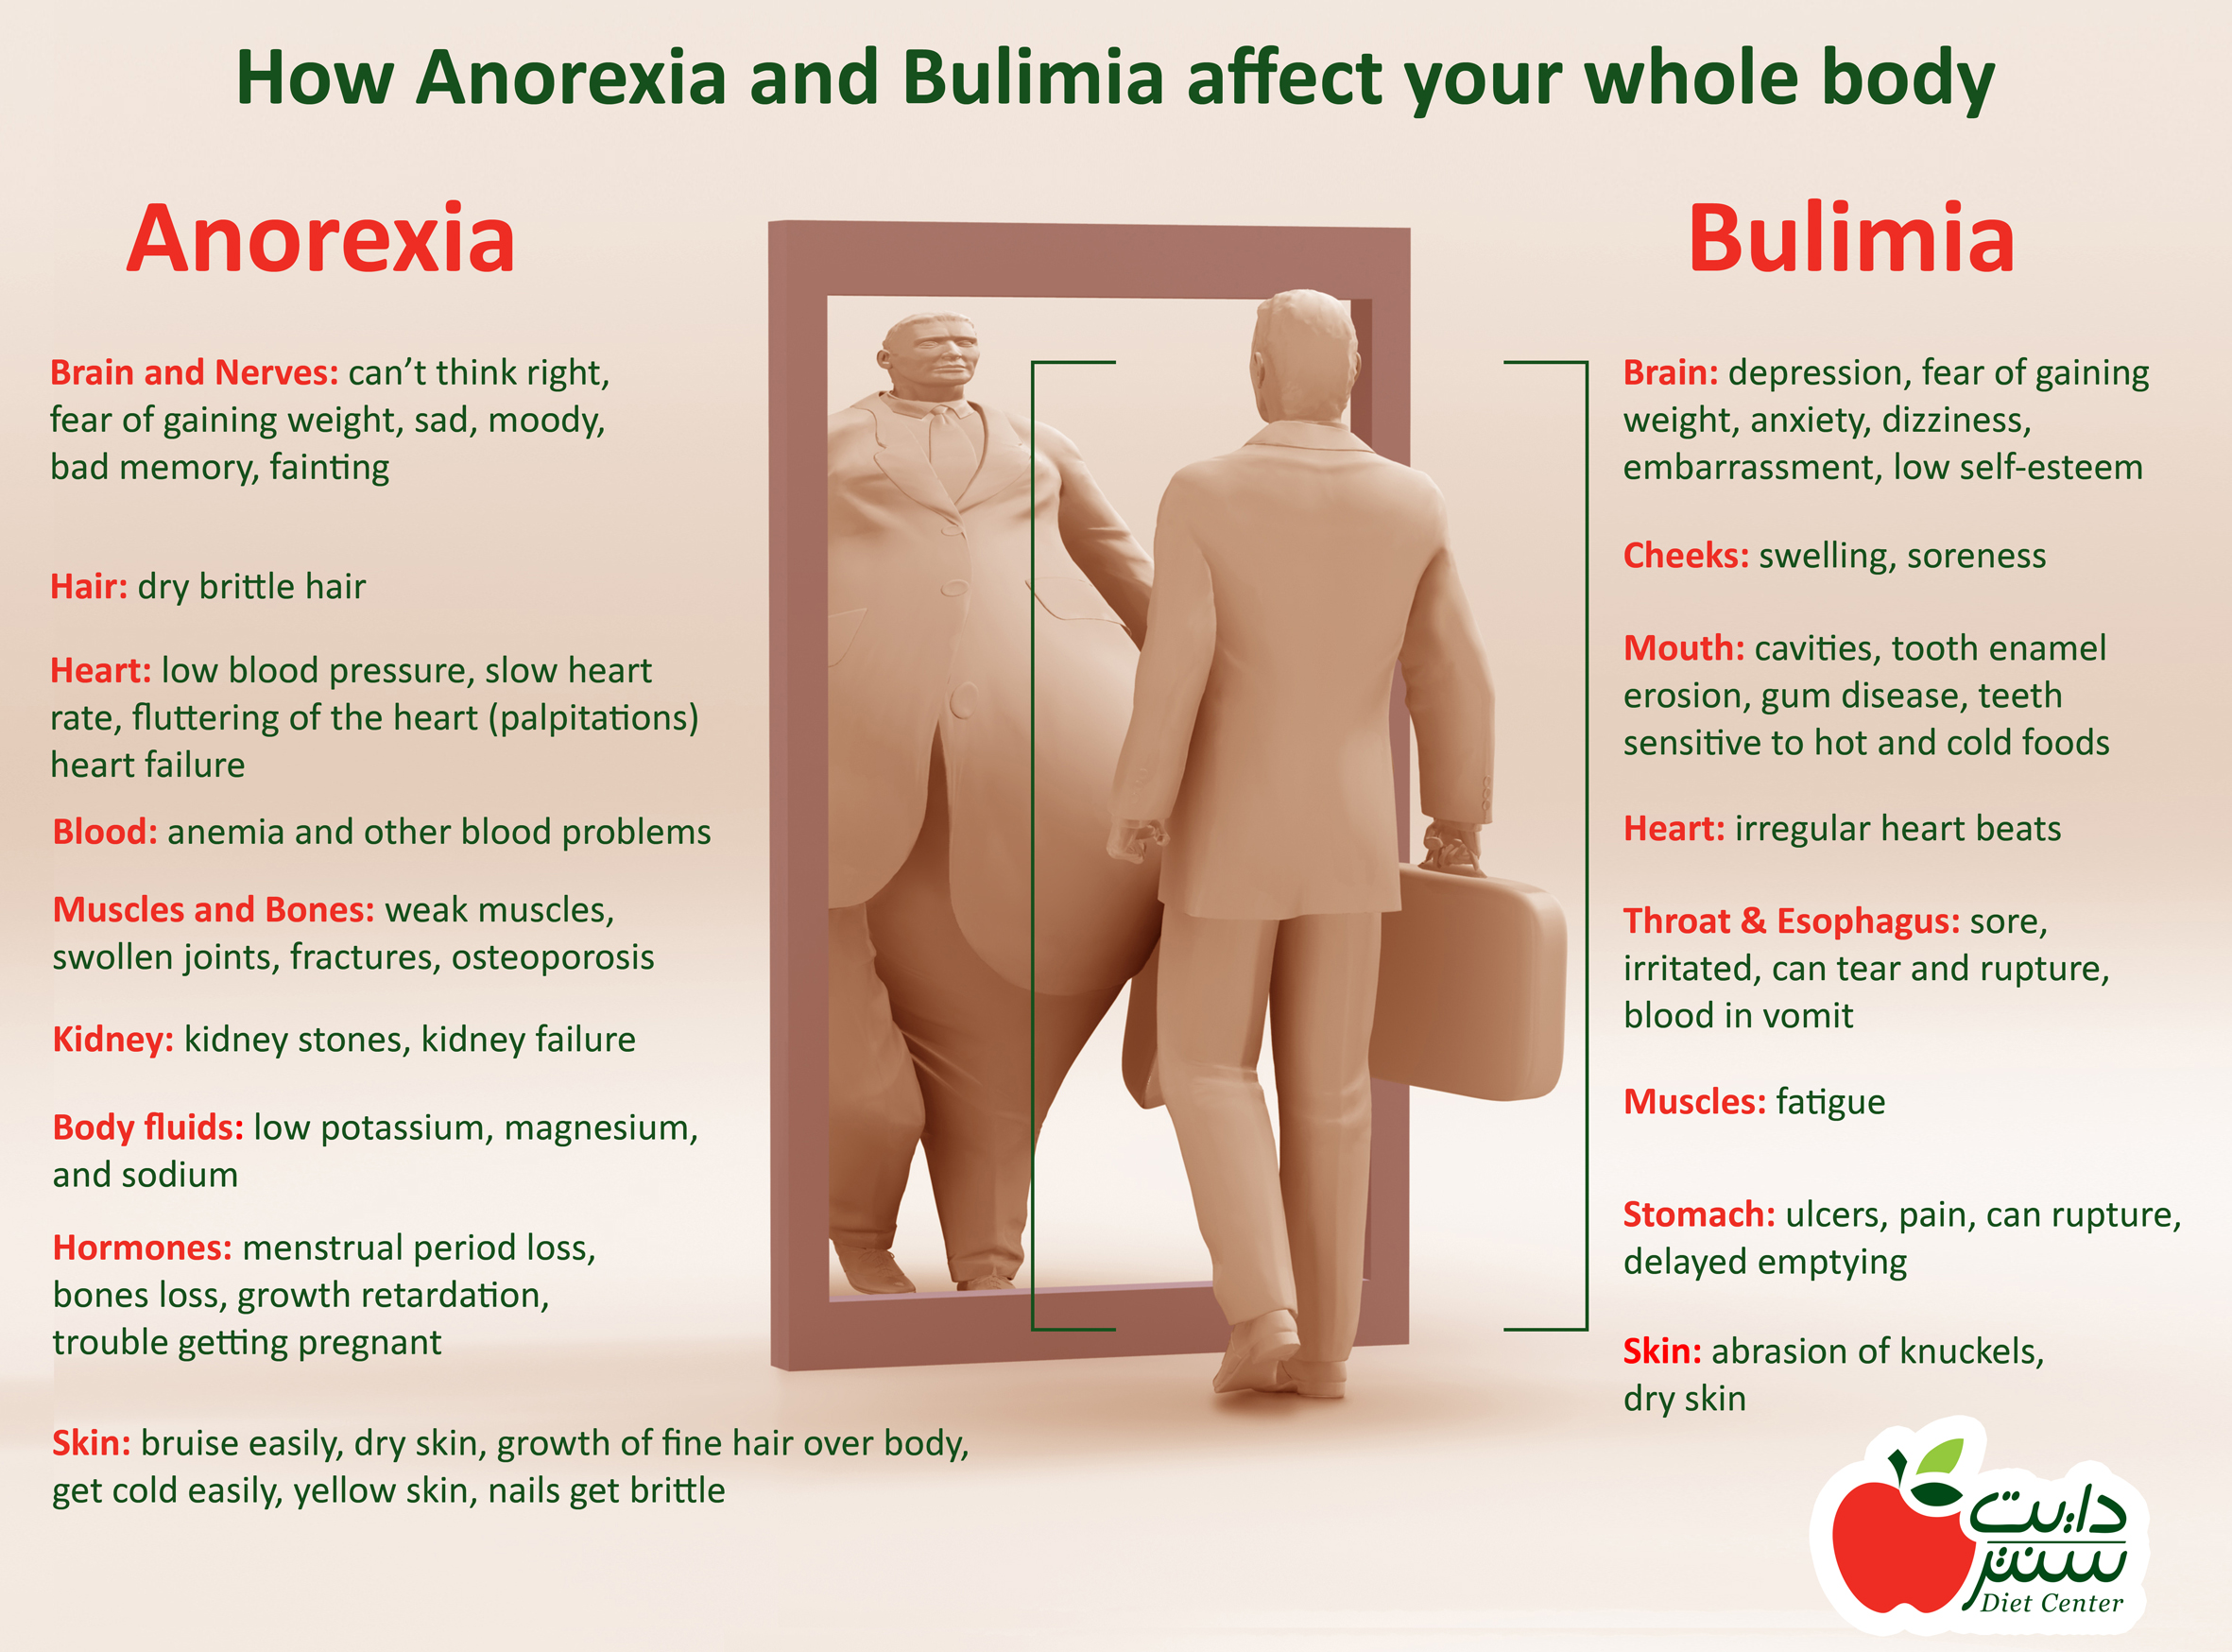 characteristics causes and treatment of bulimia Causes the exact cause of bulimia is unknown many factors could play a role in the development of eating disorders, including genetics, biology, emotional health, societal expectations and harrington bc, et al initial evaluation, diagnosis, and treatment of anorexia nervosa and bulimia nervosa.